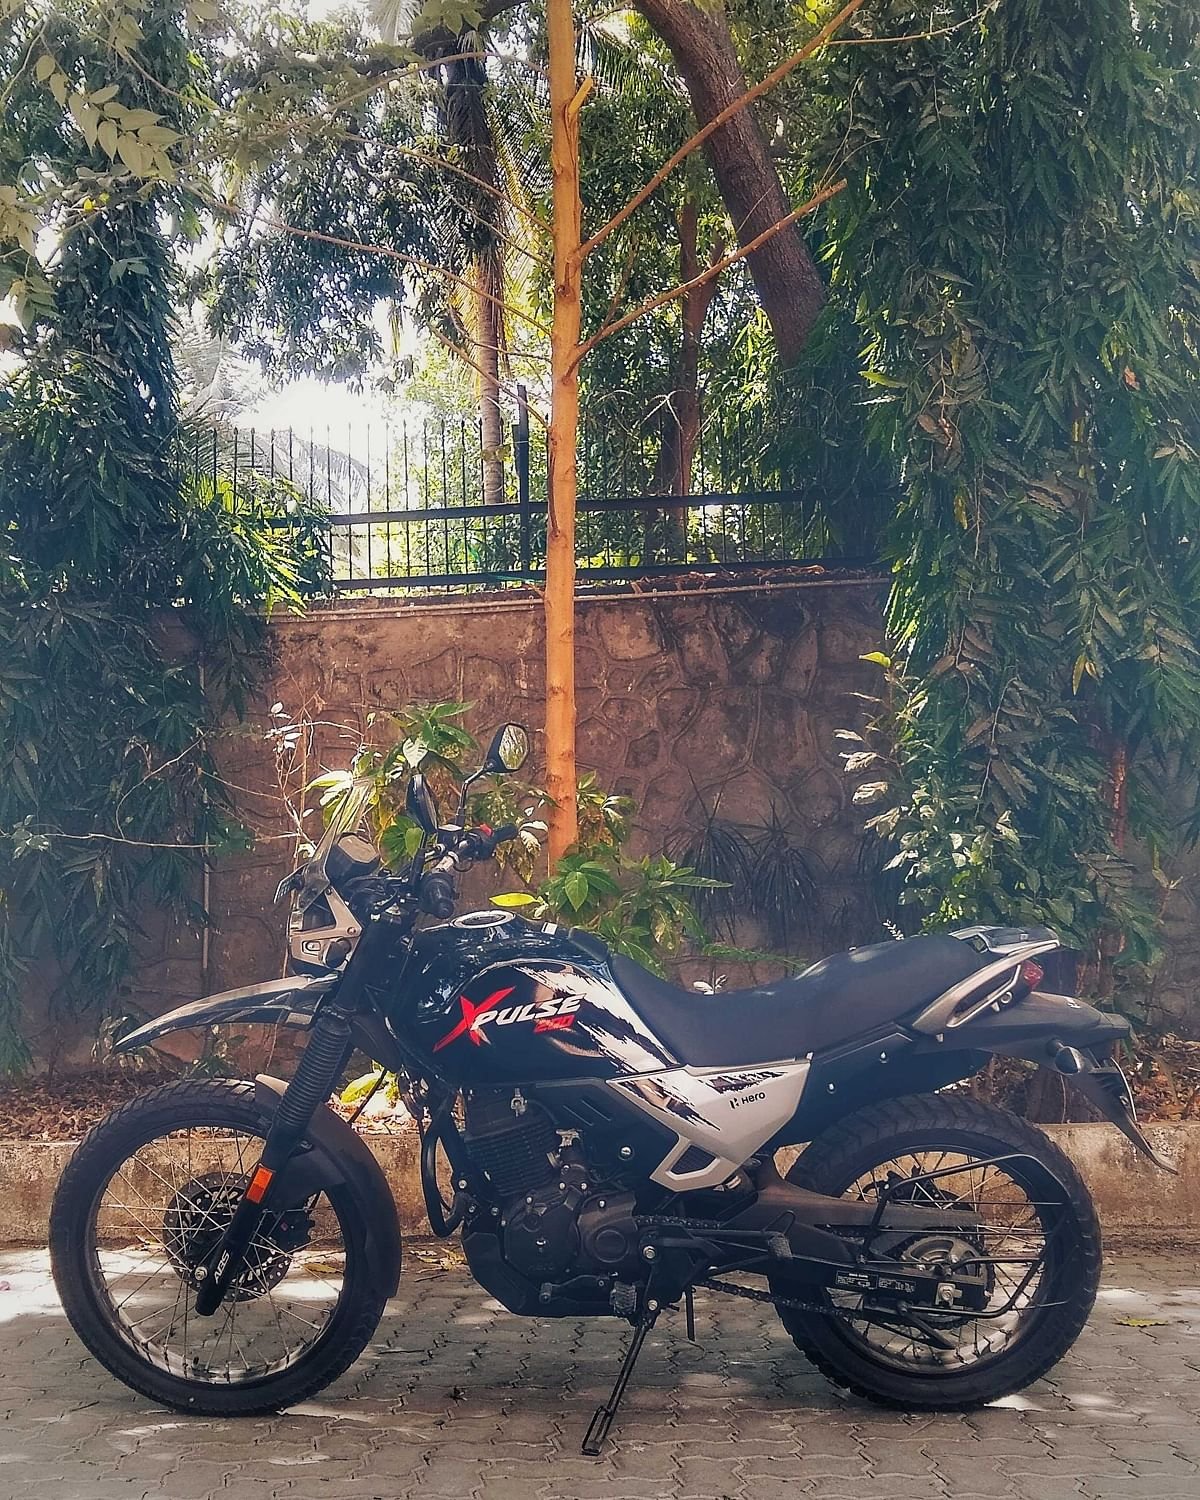 The Hero XPulse 200, the biggest motorcycle in Hero MotoCorp's current line-up. (Photo: BloombergQuint)